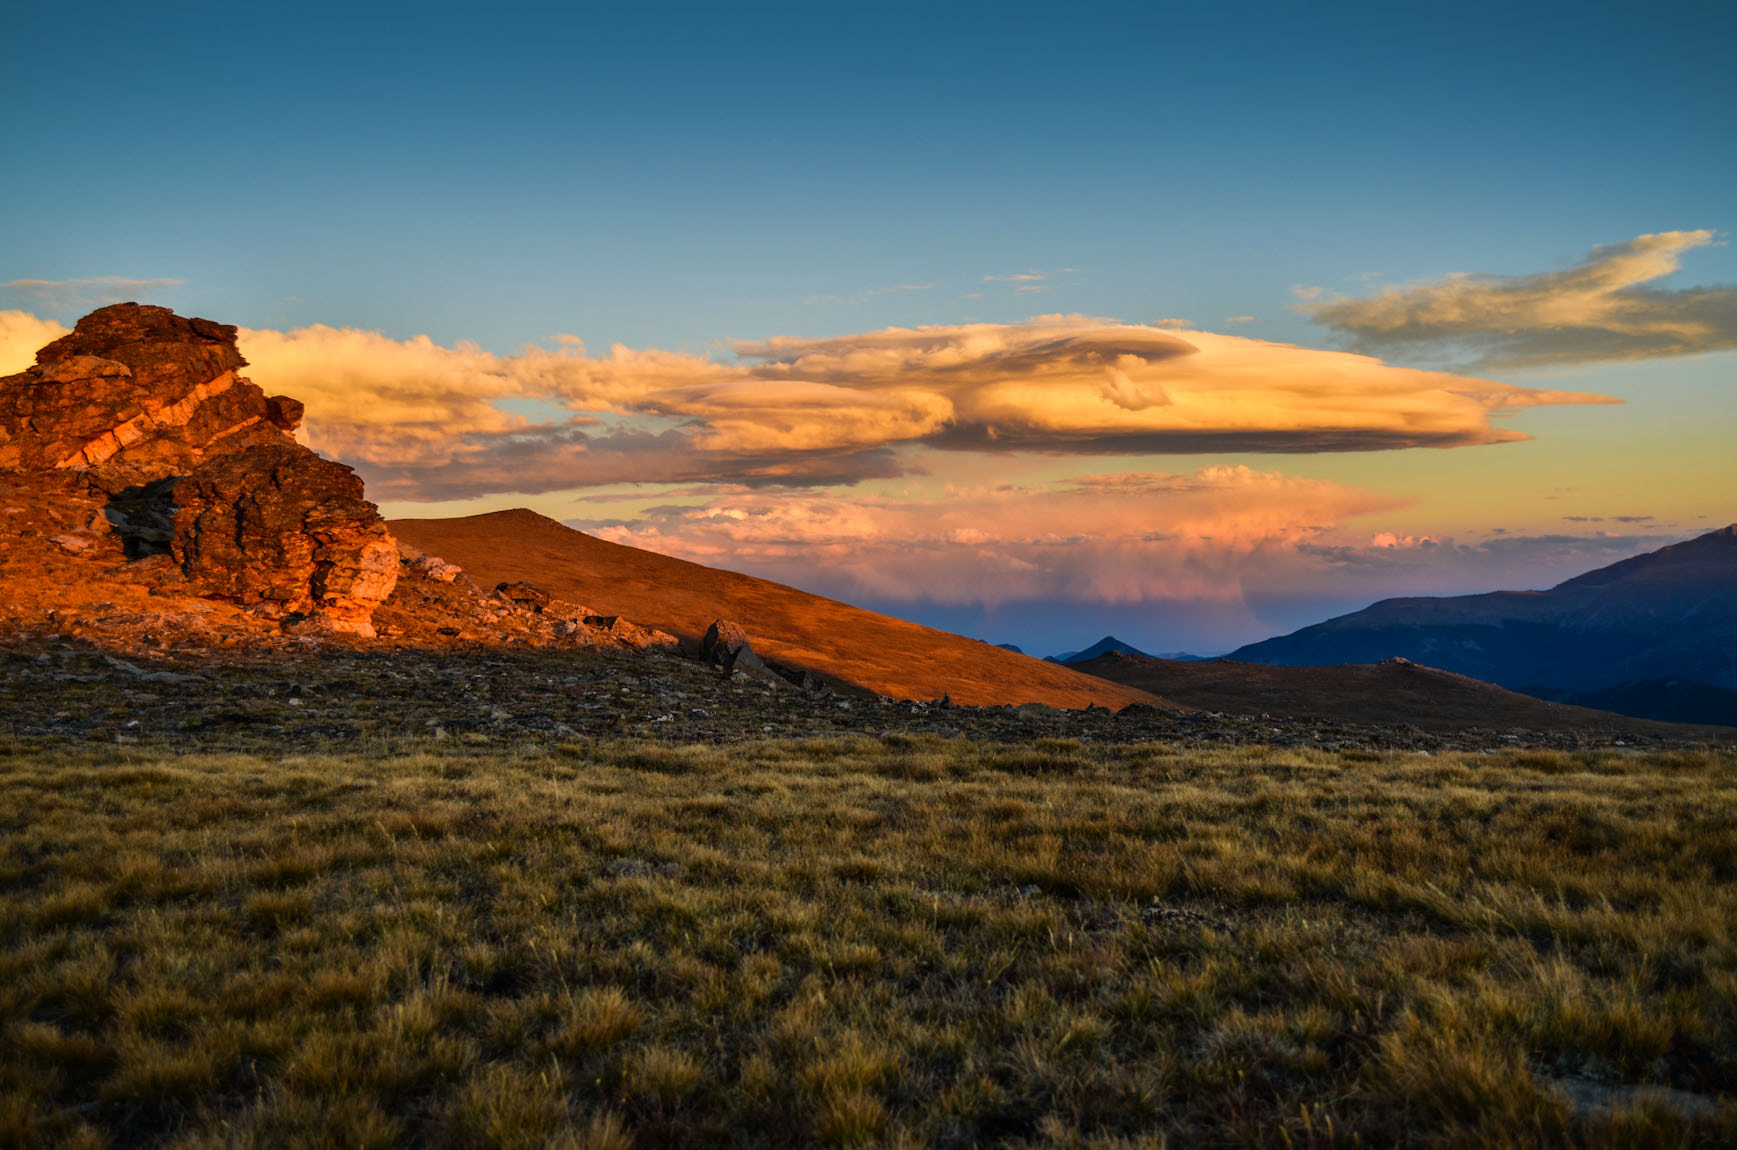 Photograph Rocky Mountain Sunset 1 by Dave Tee on 500px